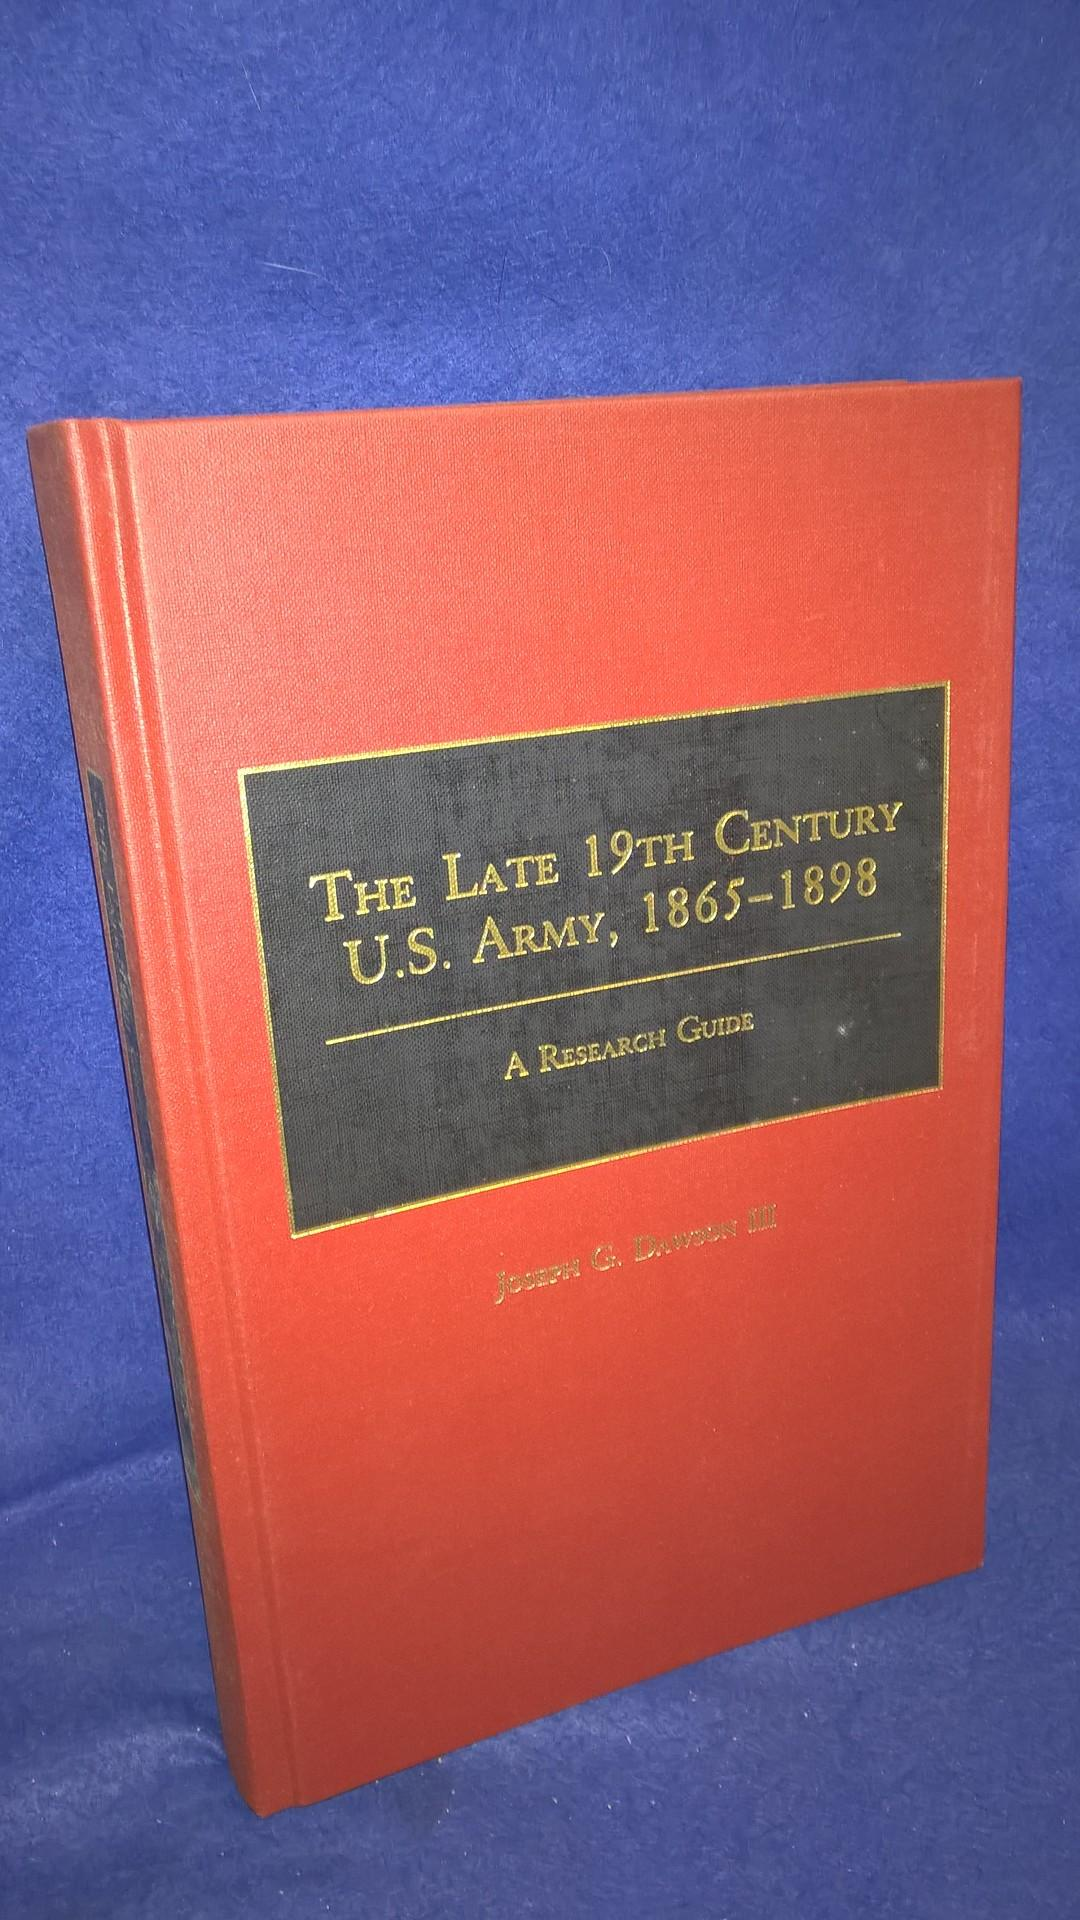 The Late 19th Century U.S. Army, 1865-1898: A Research Guide.